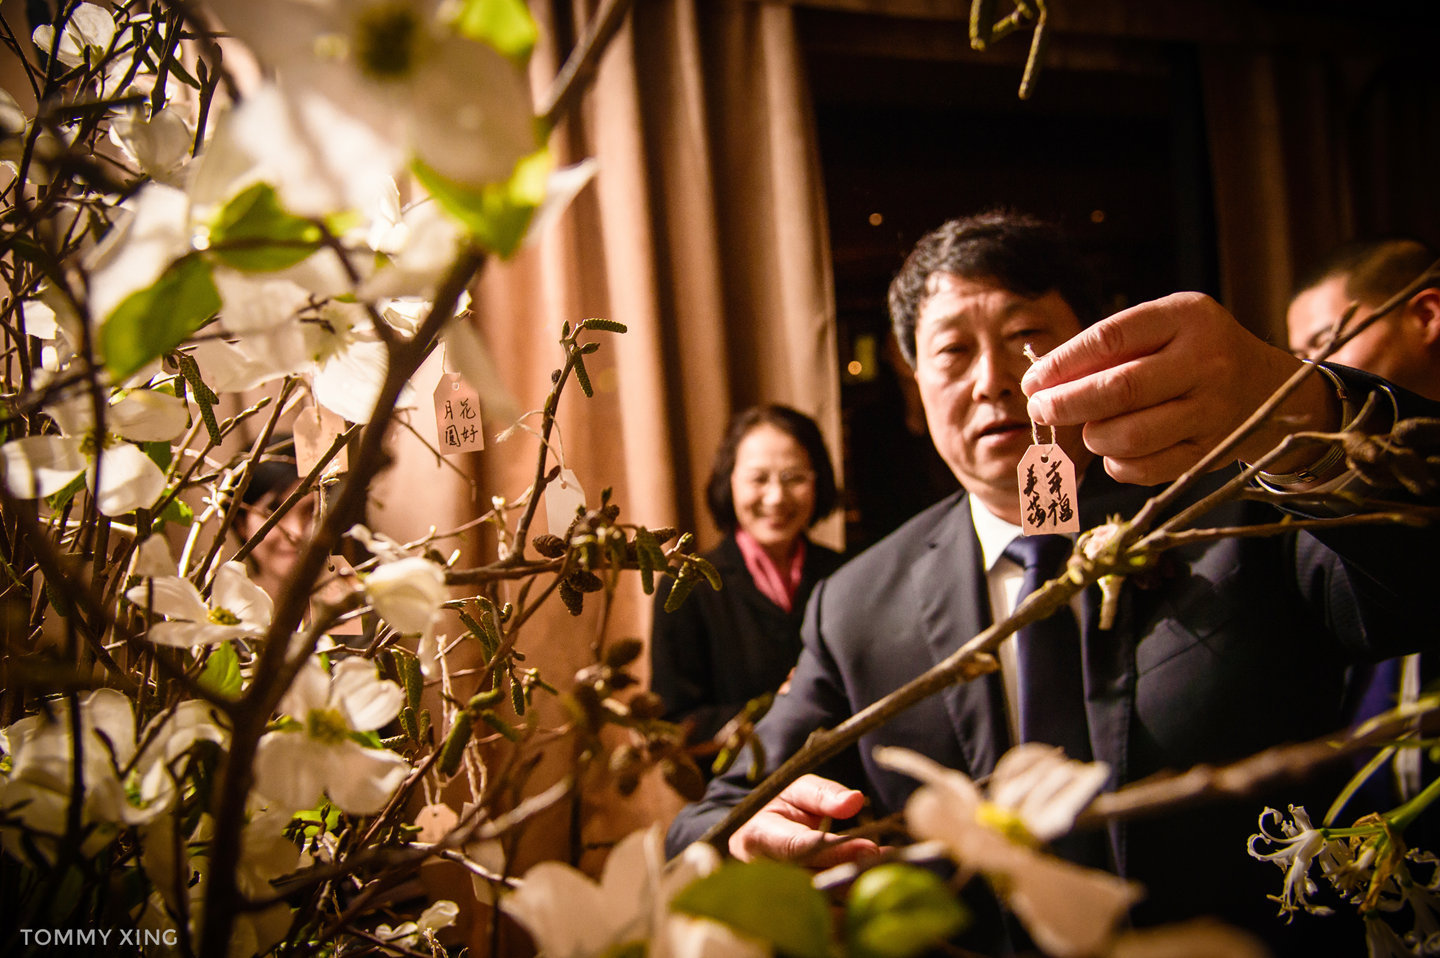 San Francisco Wedding Photography Valley Presbyterian Church WEDDING Tommy Xing Photography 洛杉矶旧金山婚礼婚纱照摄影师110.jpg